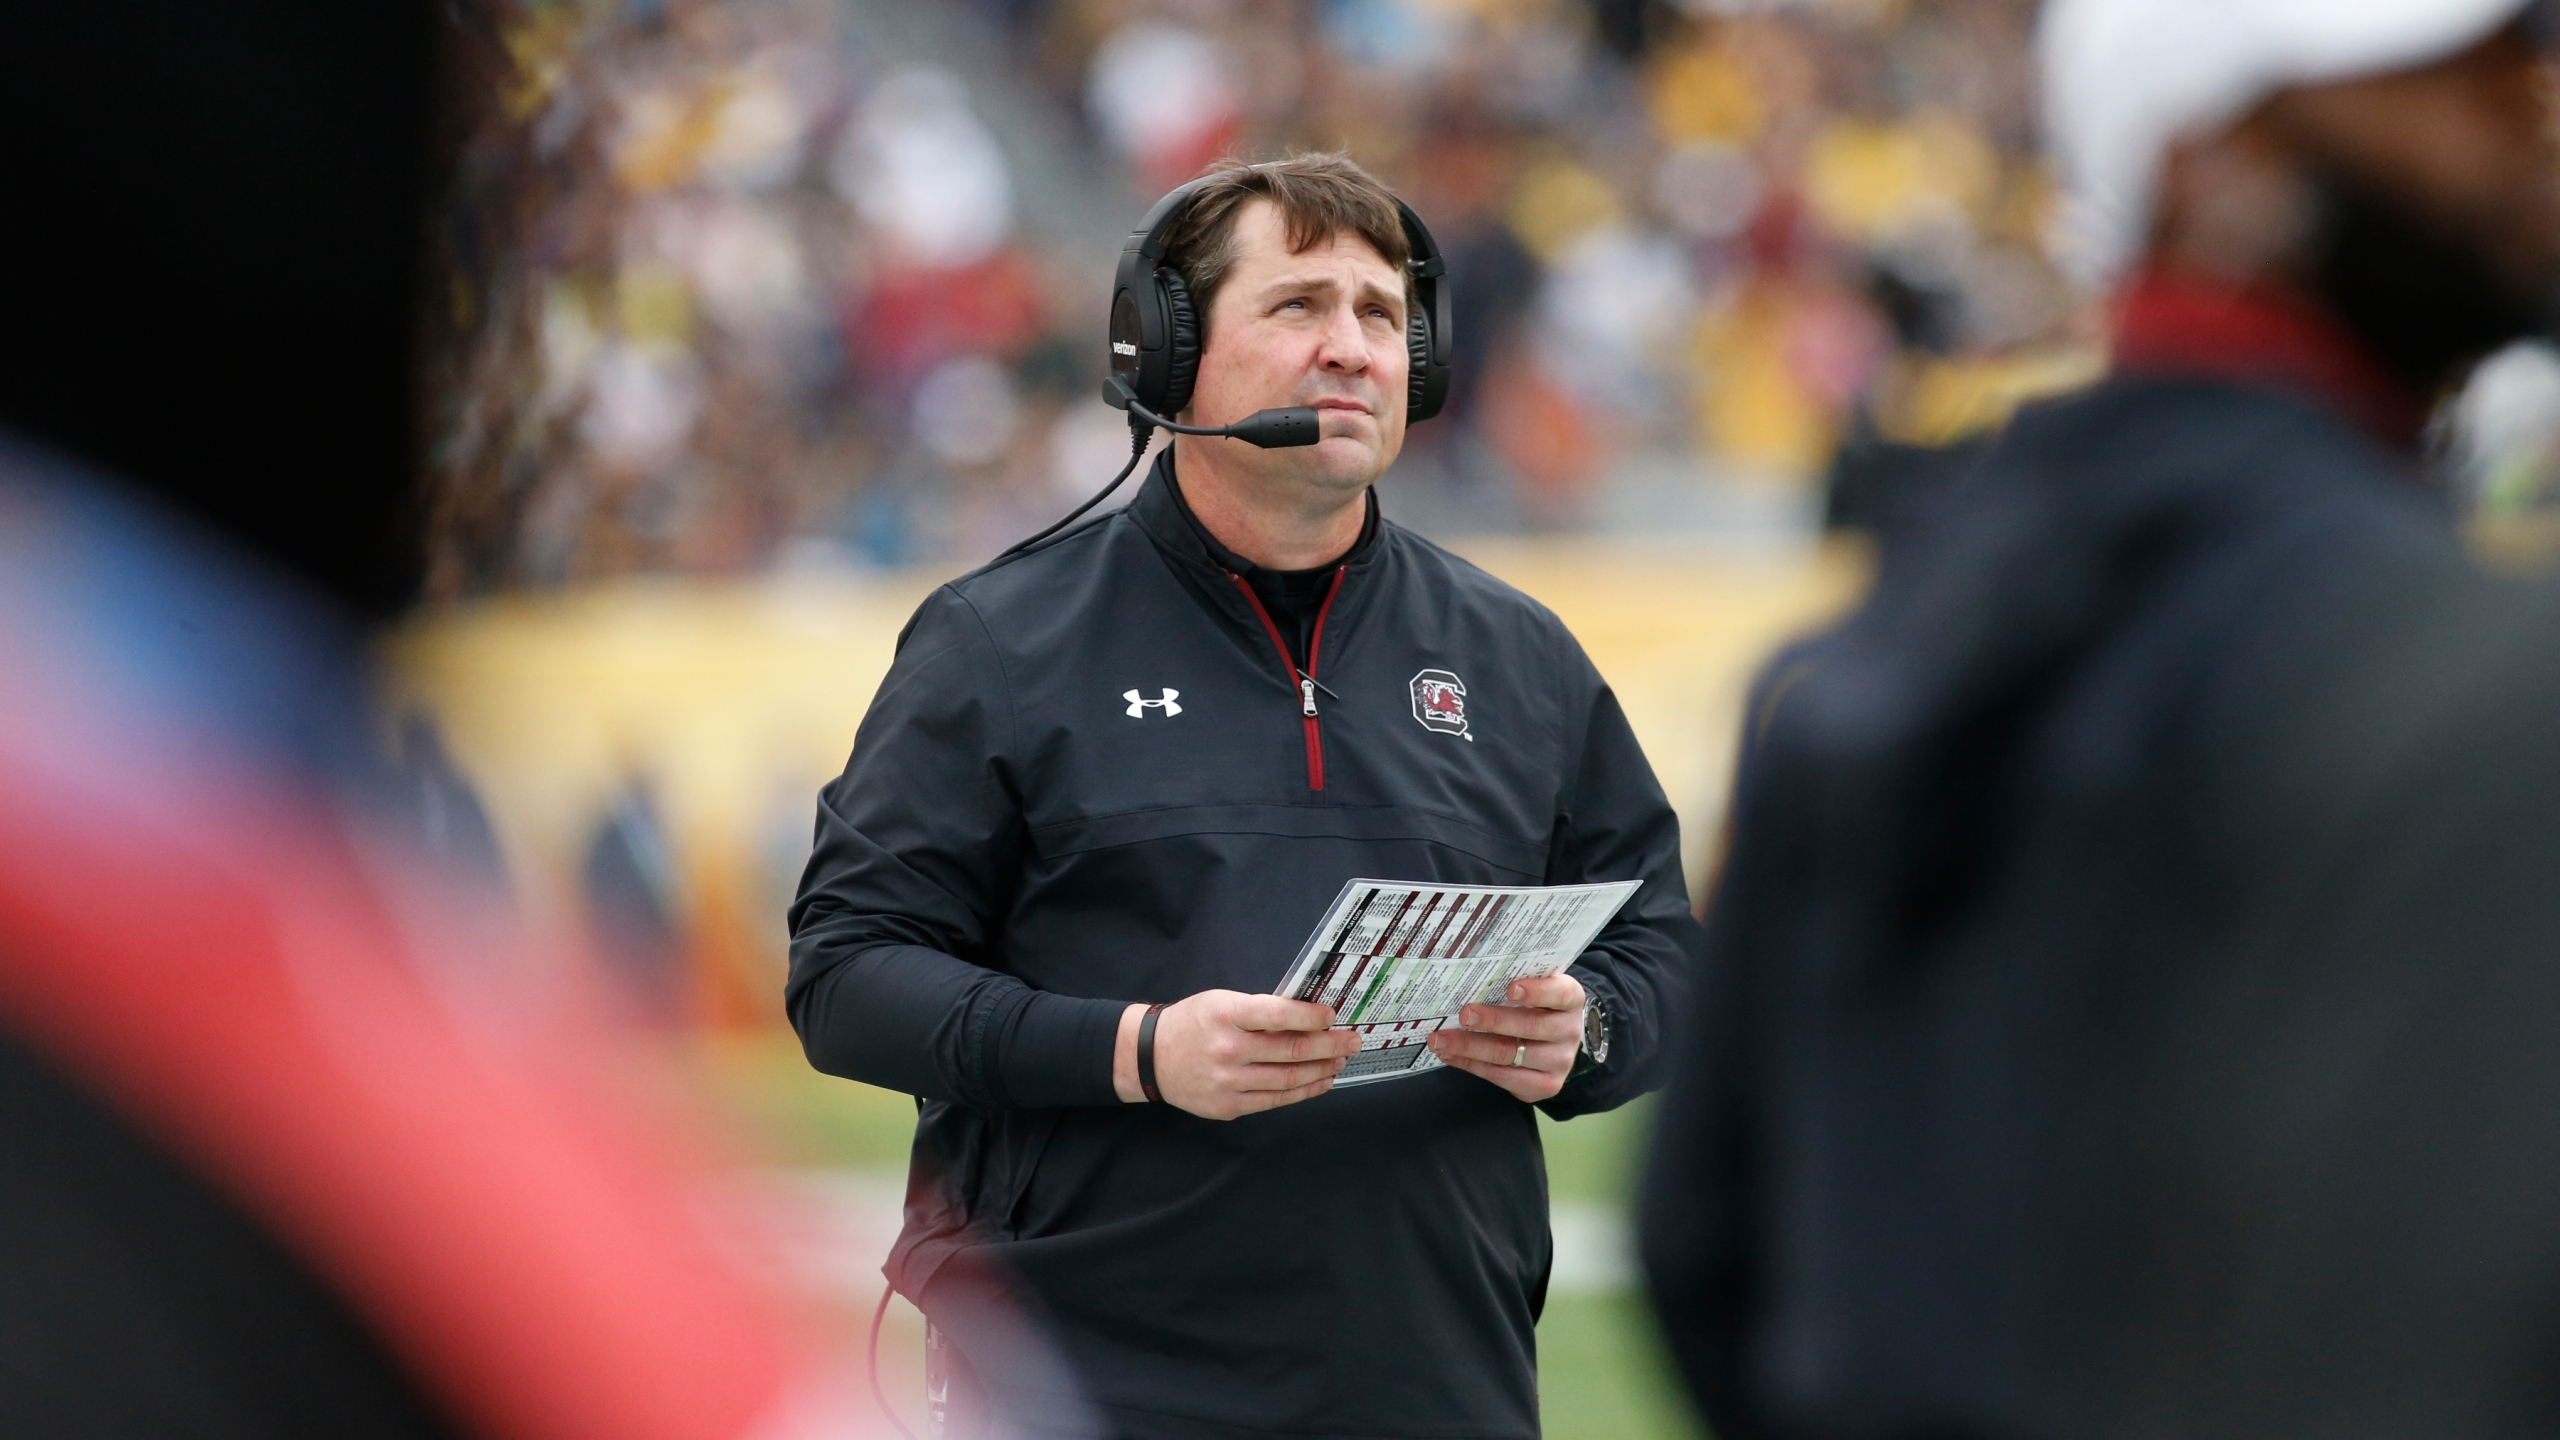 Will Muschamp Getty Images 98915174_1534732066880